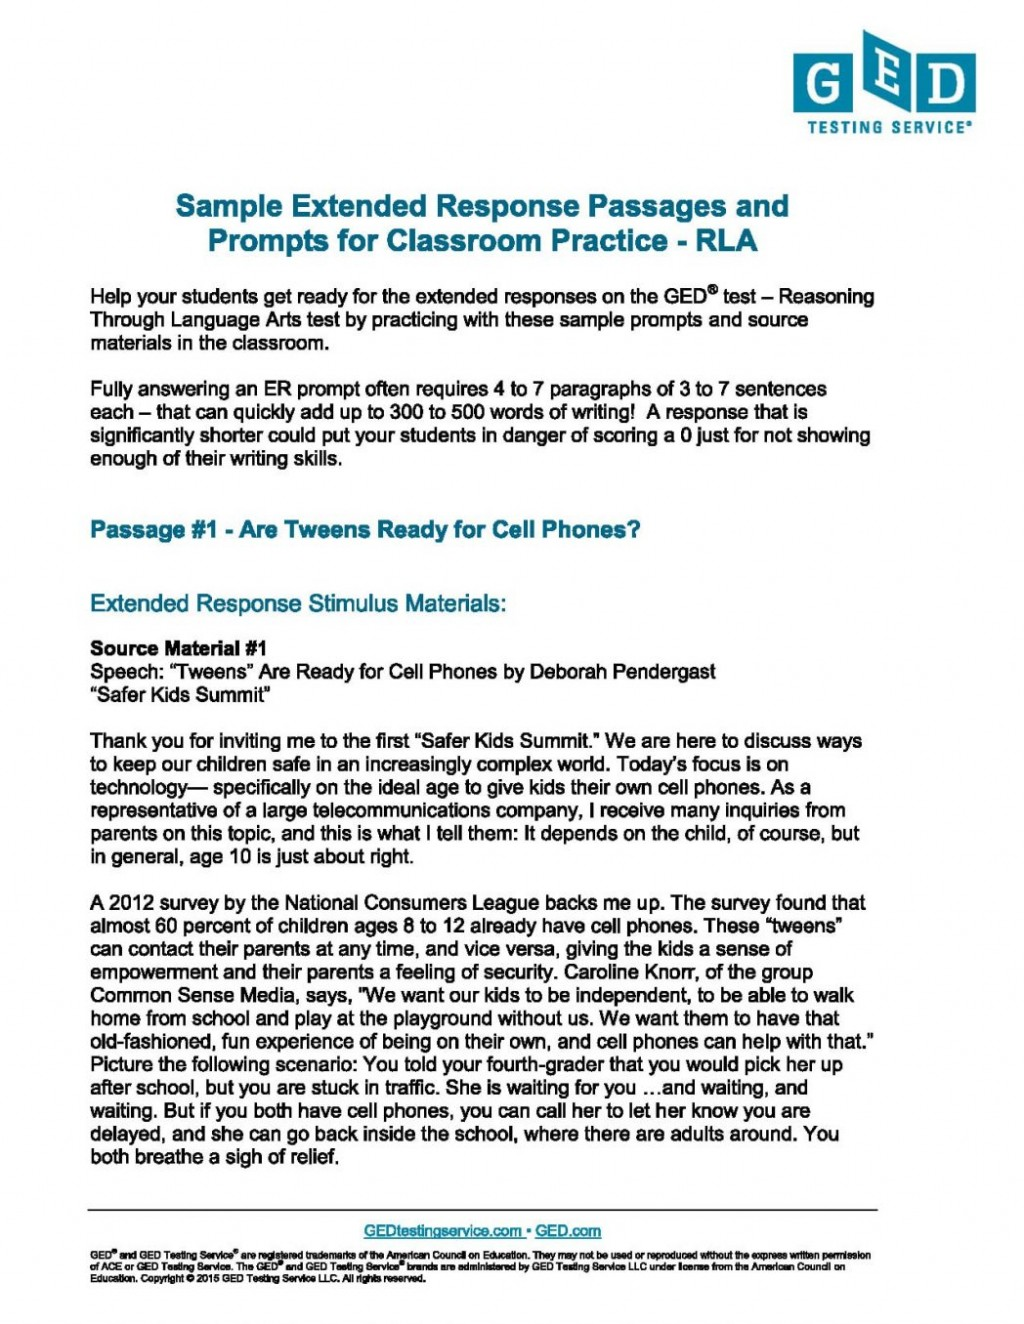 011 Sample Gedys With Scoresy Writing Prompt Good Resume Example Topics Prompts For Classroom Practic Tips Youtube Samples In Spanish Lesson Plans Template Rubric Examples 1048x1356 Rare Ged Essays Scores Pdf Large